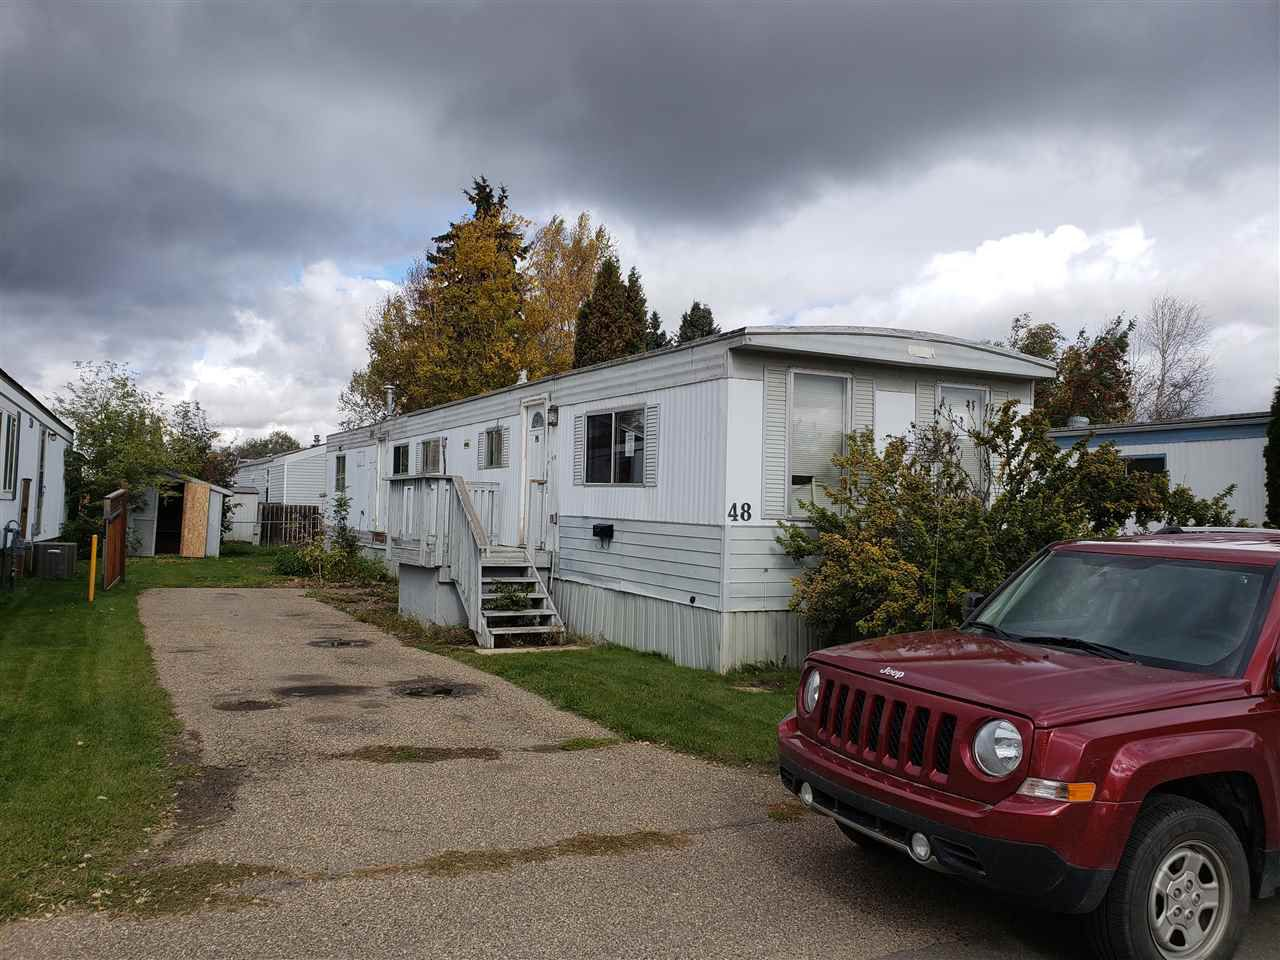 Main Photo: 48 winterburn in Edmonton: Zone 59 Mobile for sale : MLS®# E4131286